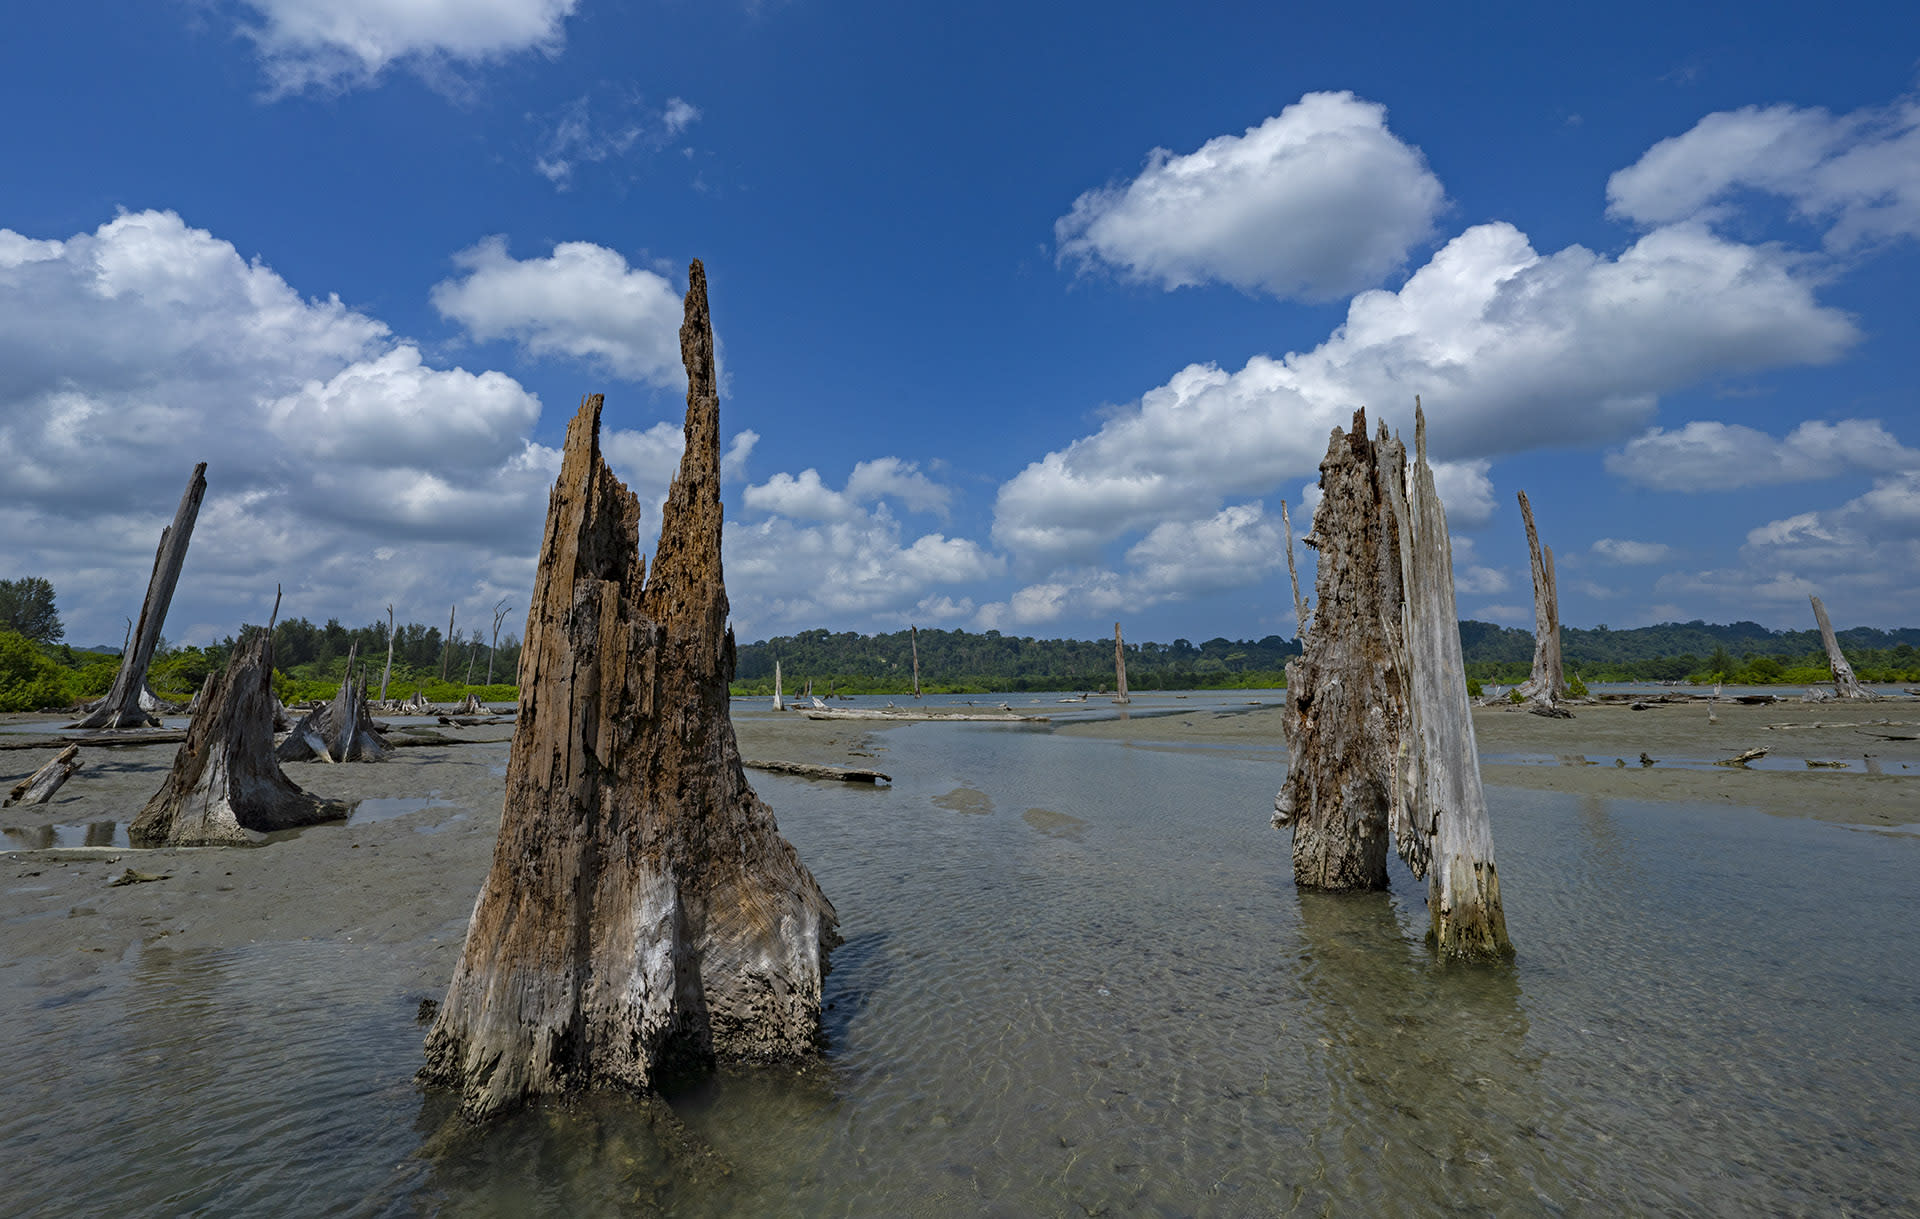 (Top) The waters along the Nicobar islands are home to over 500 species of corals that sustain diverse and rich marine ecosystems. (Above) The tsunami brought down gargantuan trees along the coast. Several were scorched by saline waters leaving behind dead trunks.